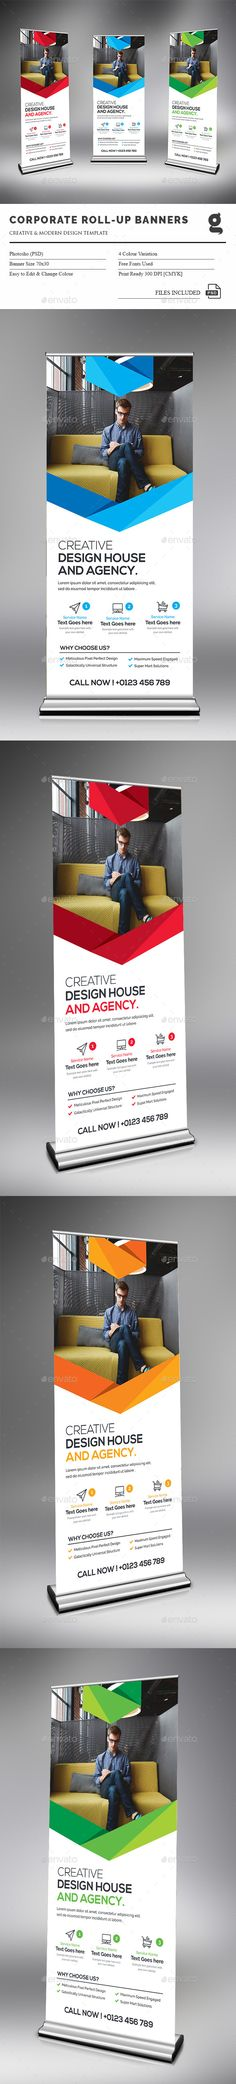 Corporate Rollup Banner Template PSD #design Download: http://graphicriver.net/item/corporate-rollup-banner/14492283?ref=ksioks